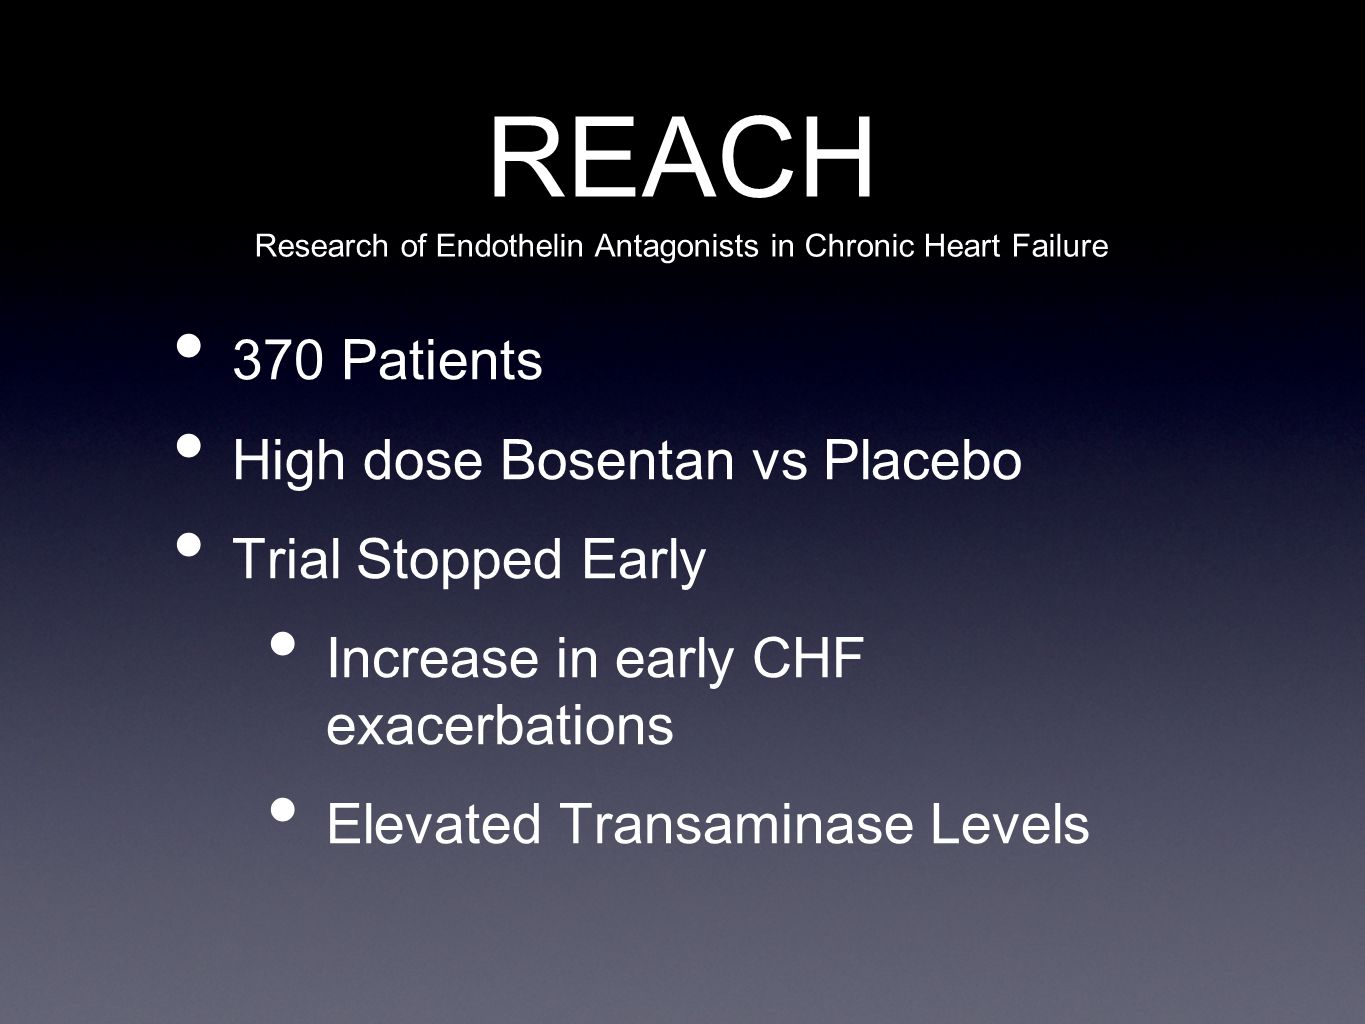 Research of Endothelin Antagonists in Chronic Heart Failure